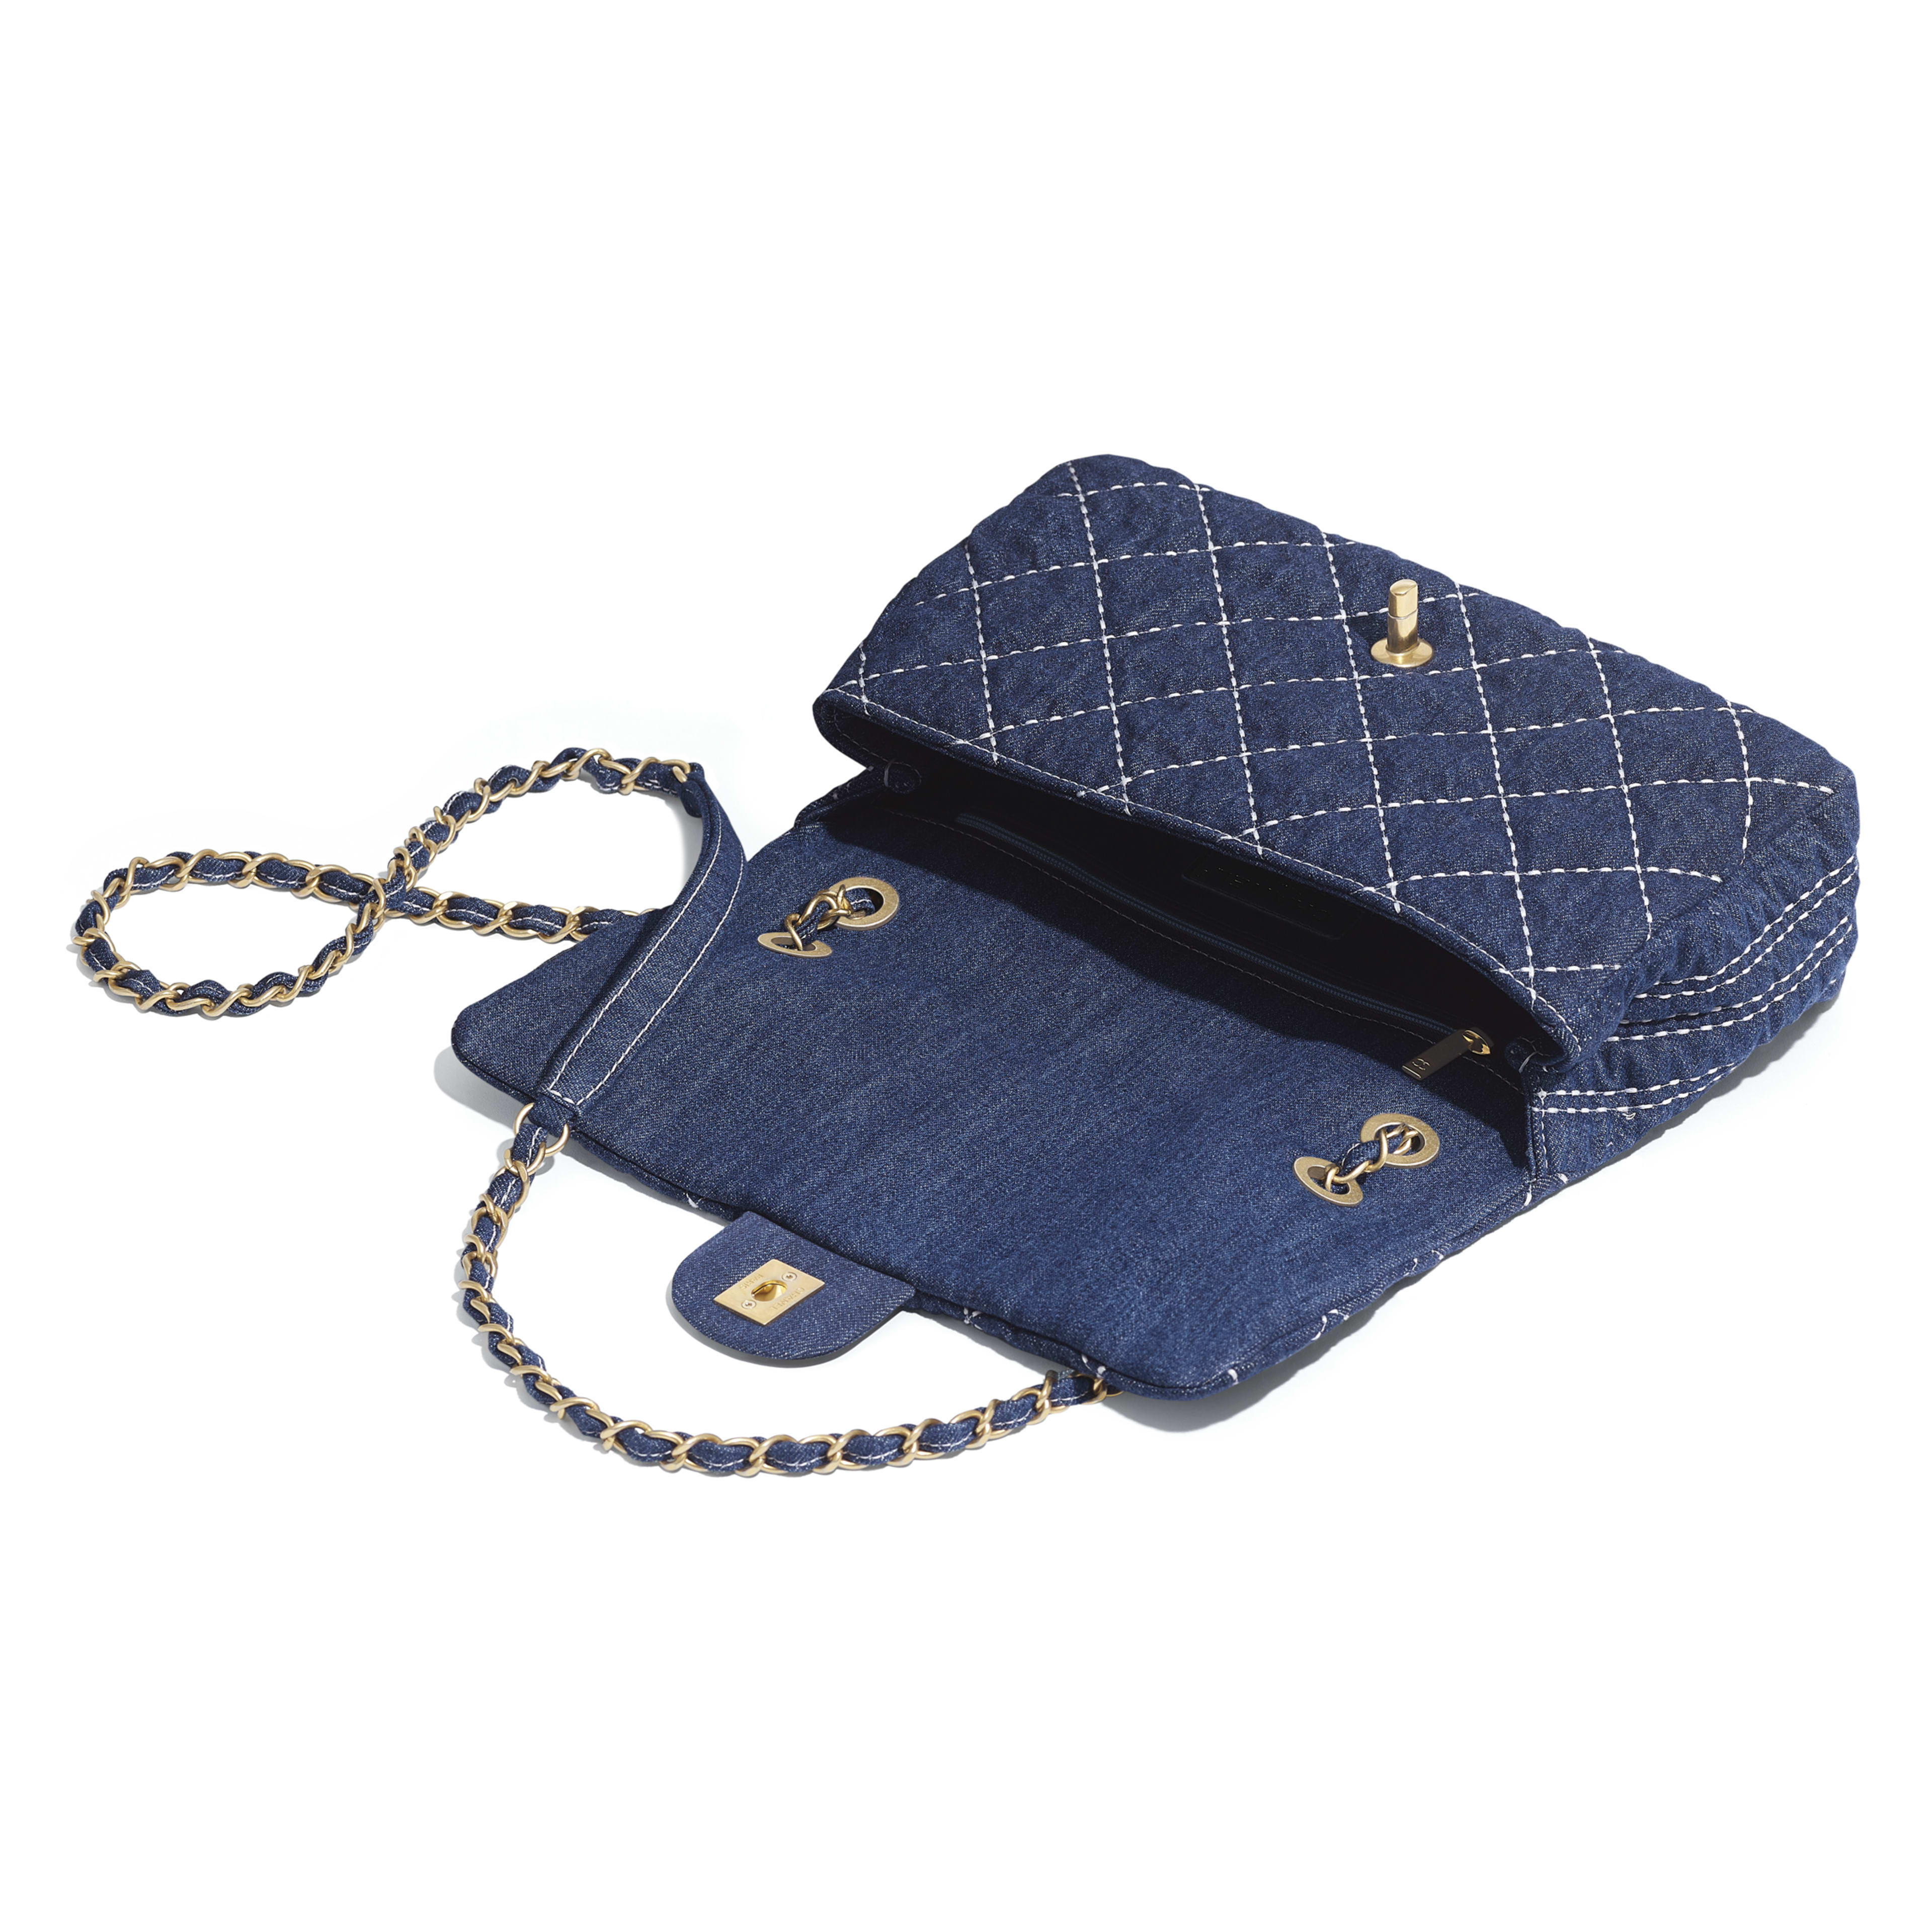 Flap Bag - Blue - Denim & Gold Metal - Other view - see full sized version